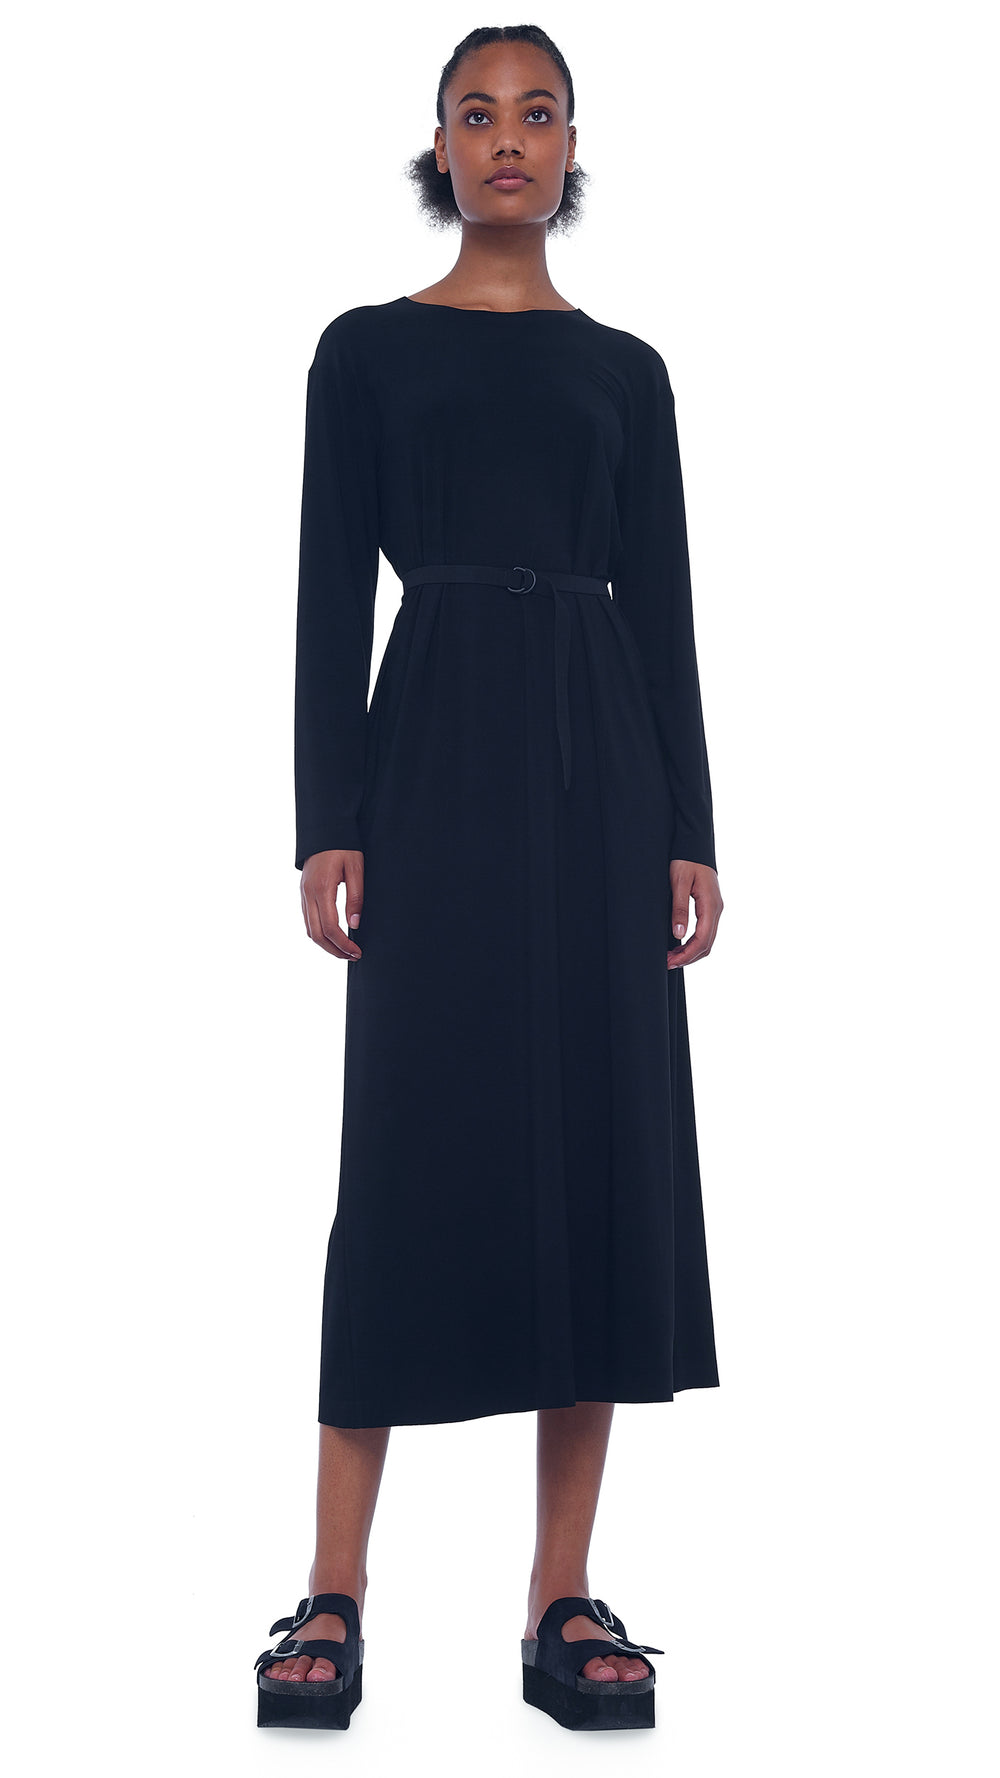 BF LONG SLEEVE CREW MIDCALF DRESS